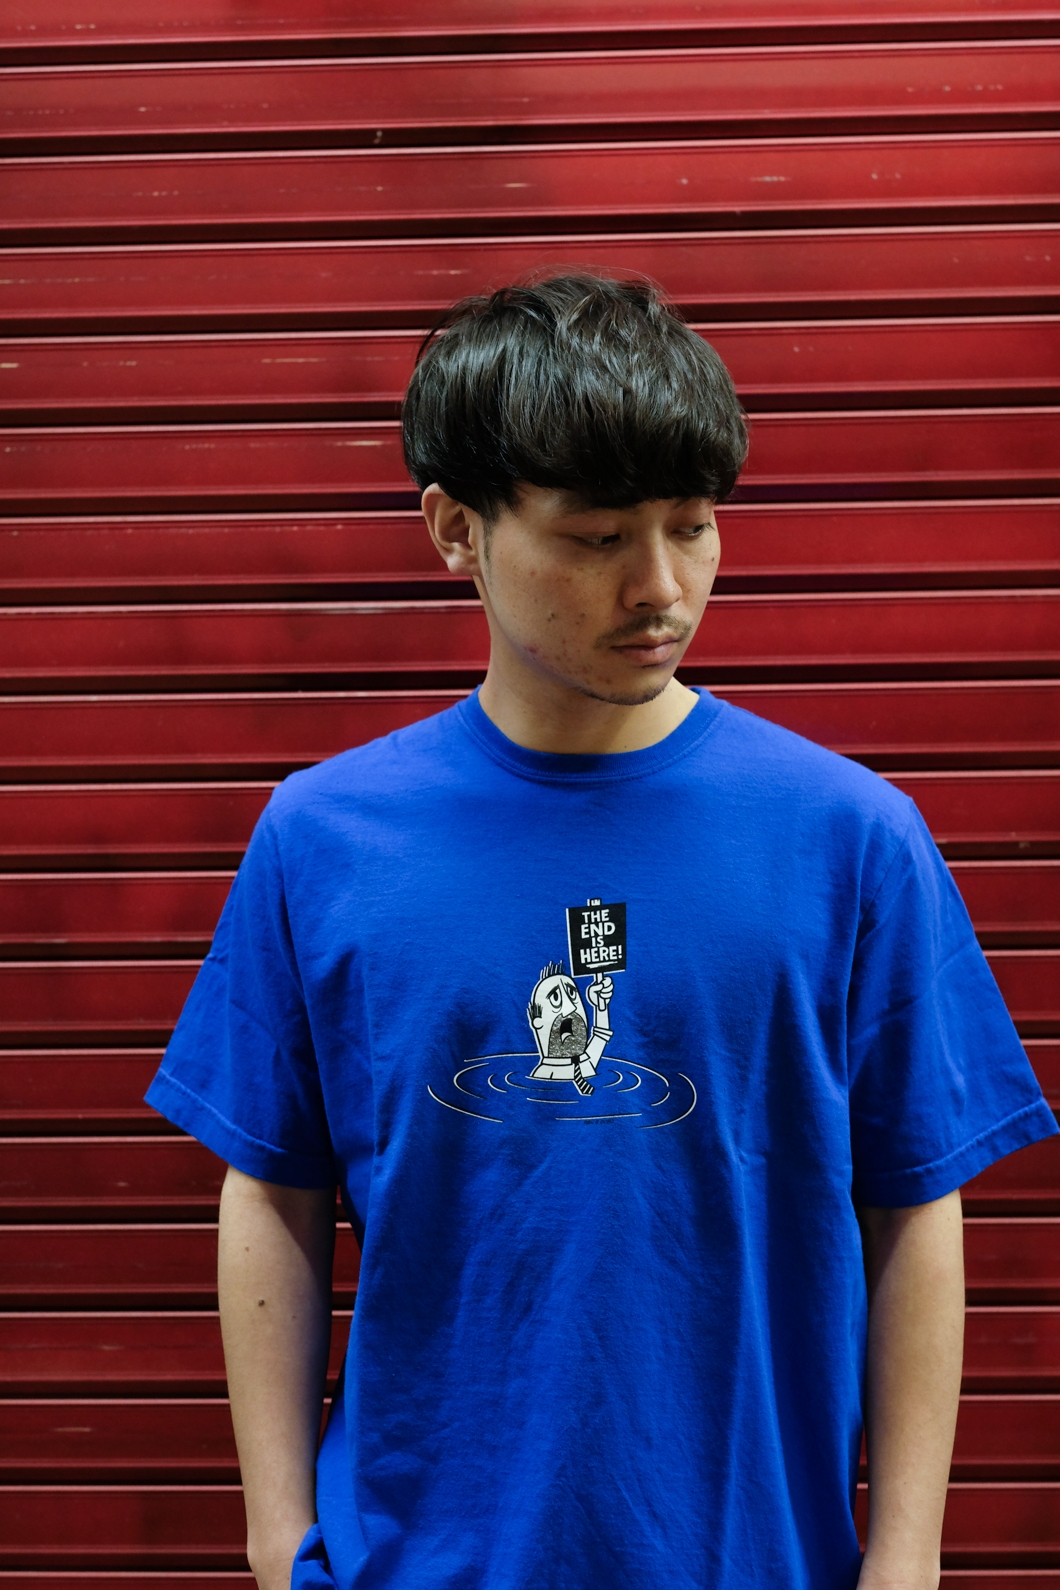 【RAISED BY WOLVES/レイズドバイウルブス】THE END IS HERE TEE Tシャツ / ROYAL